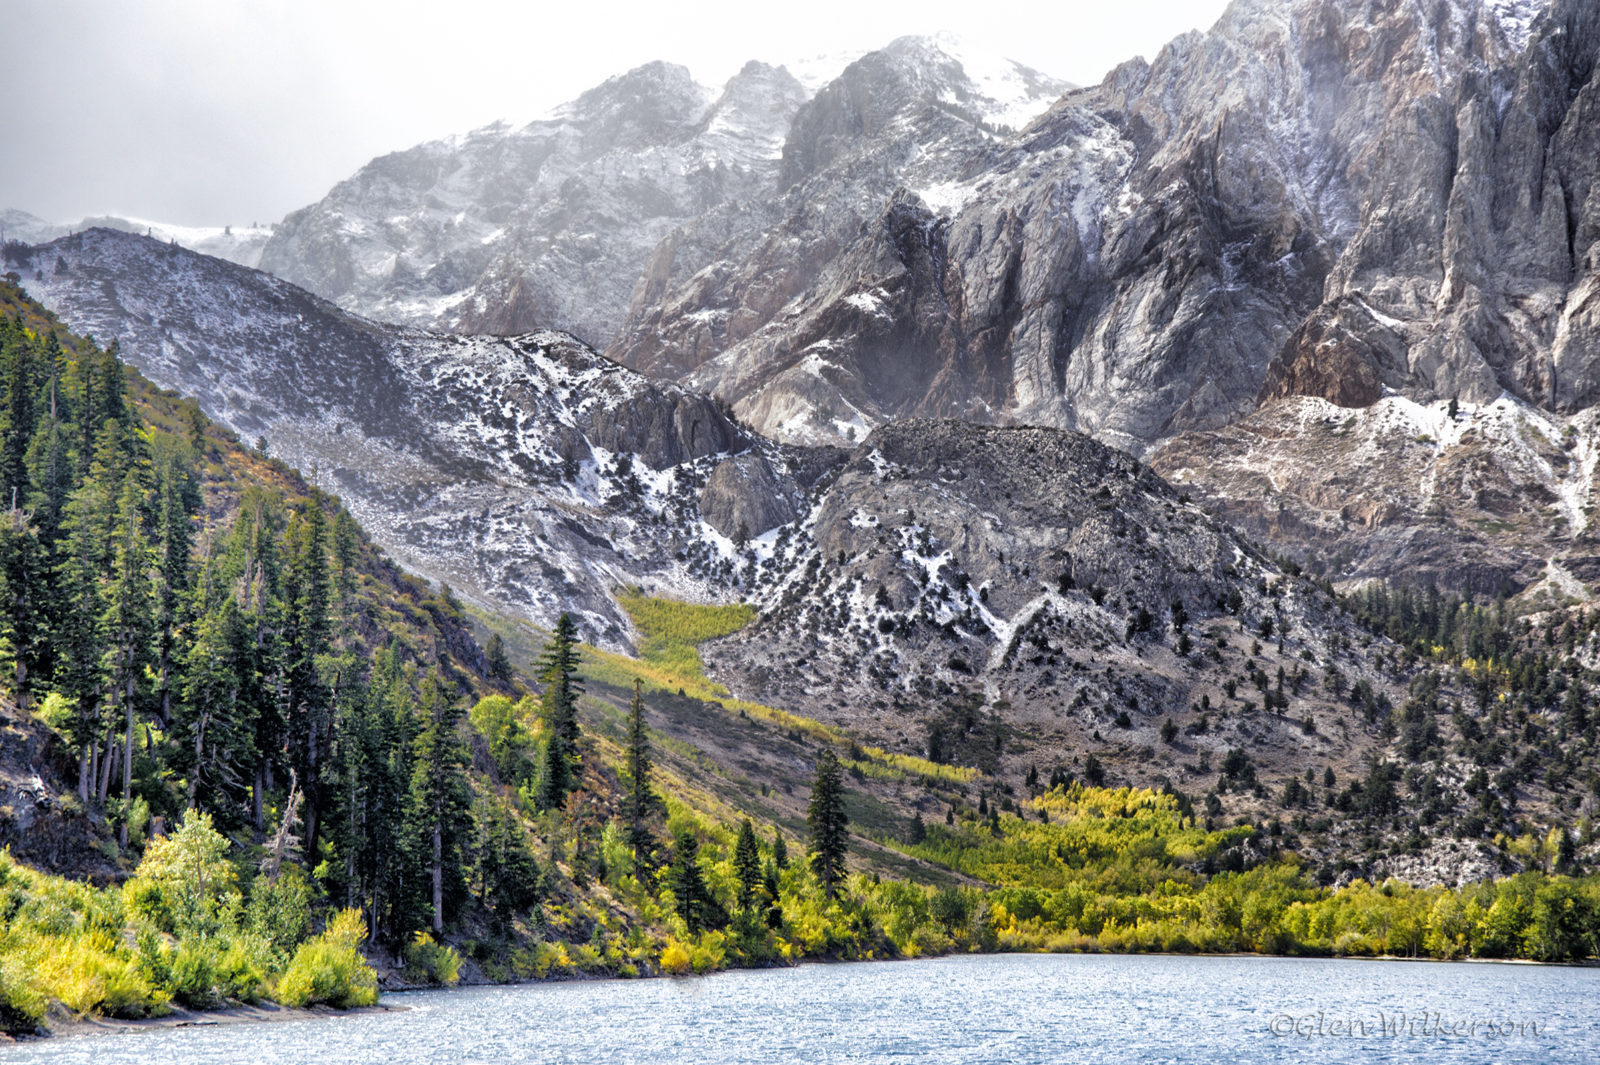 Snowstorm and Fall Color at Convict Lake